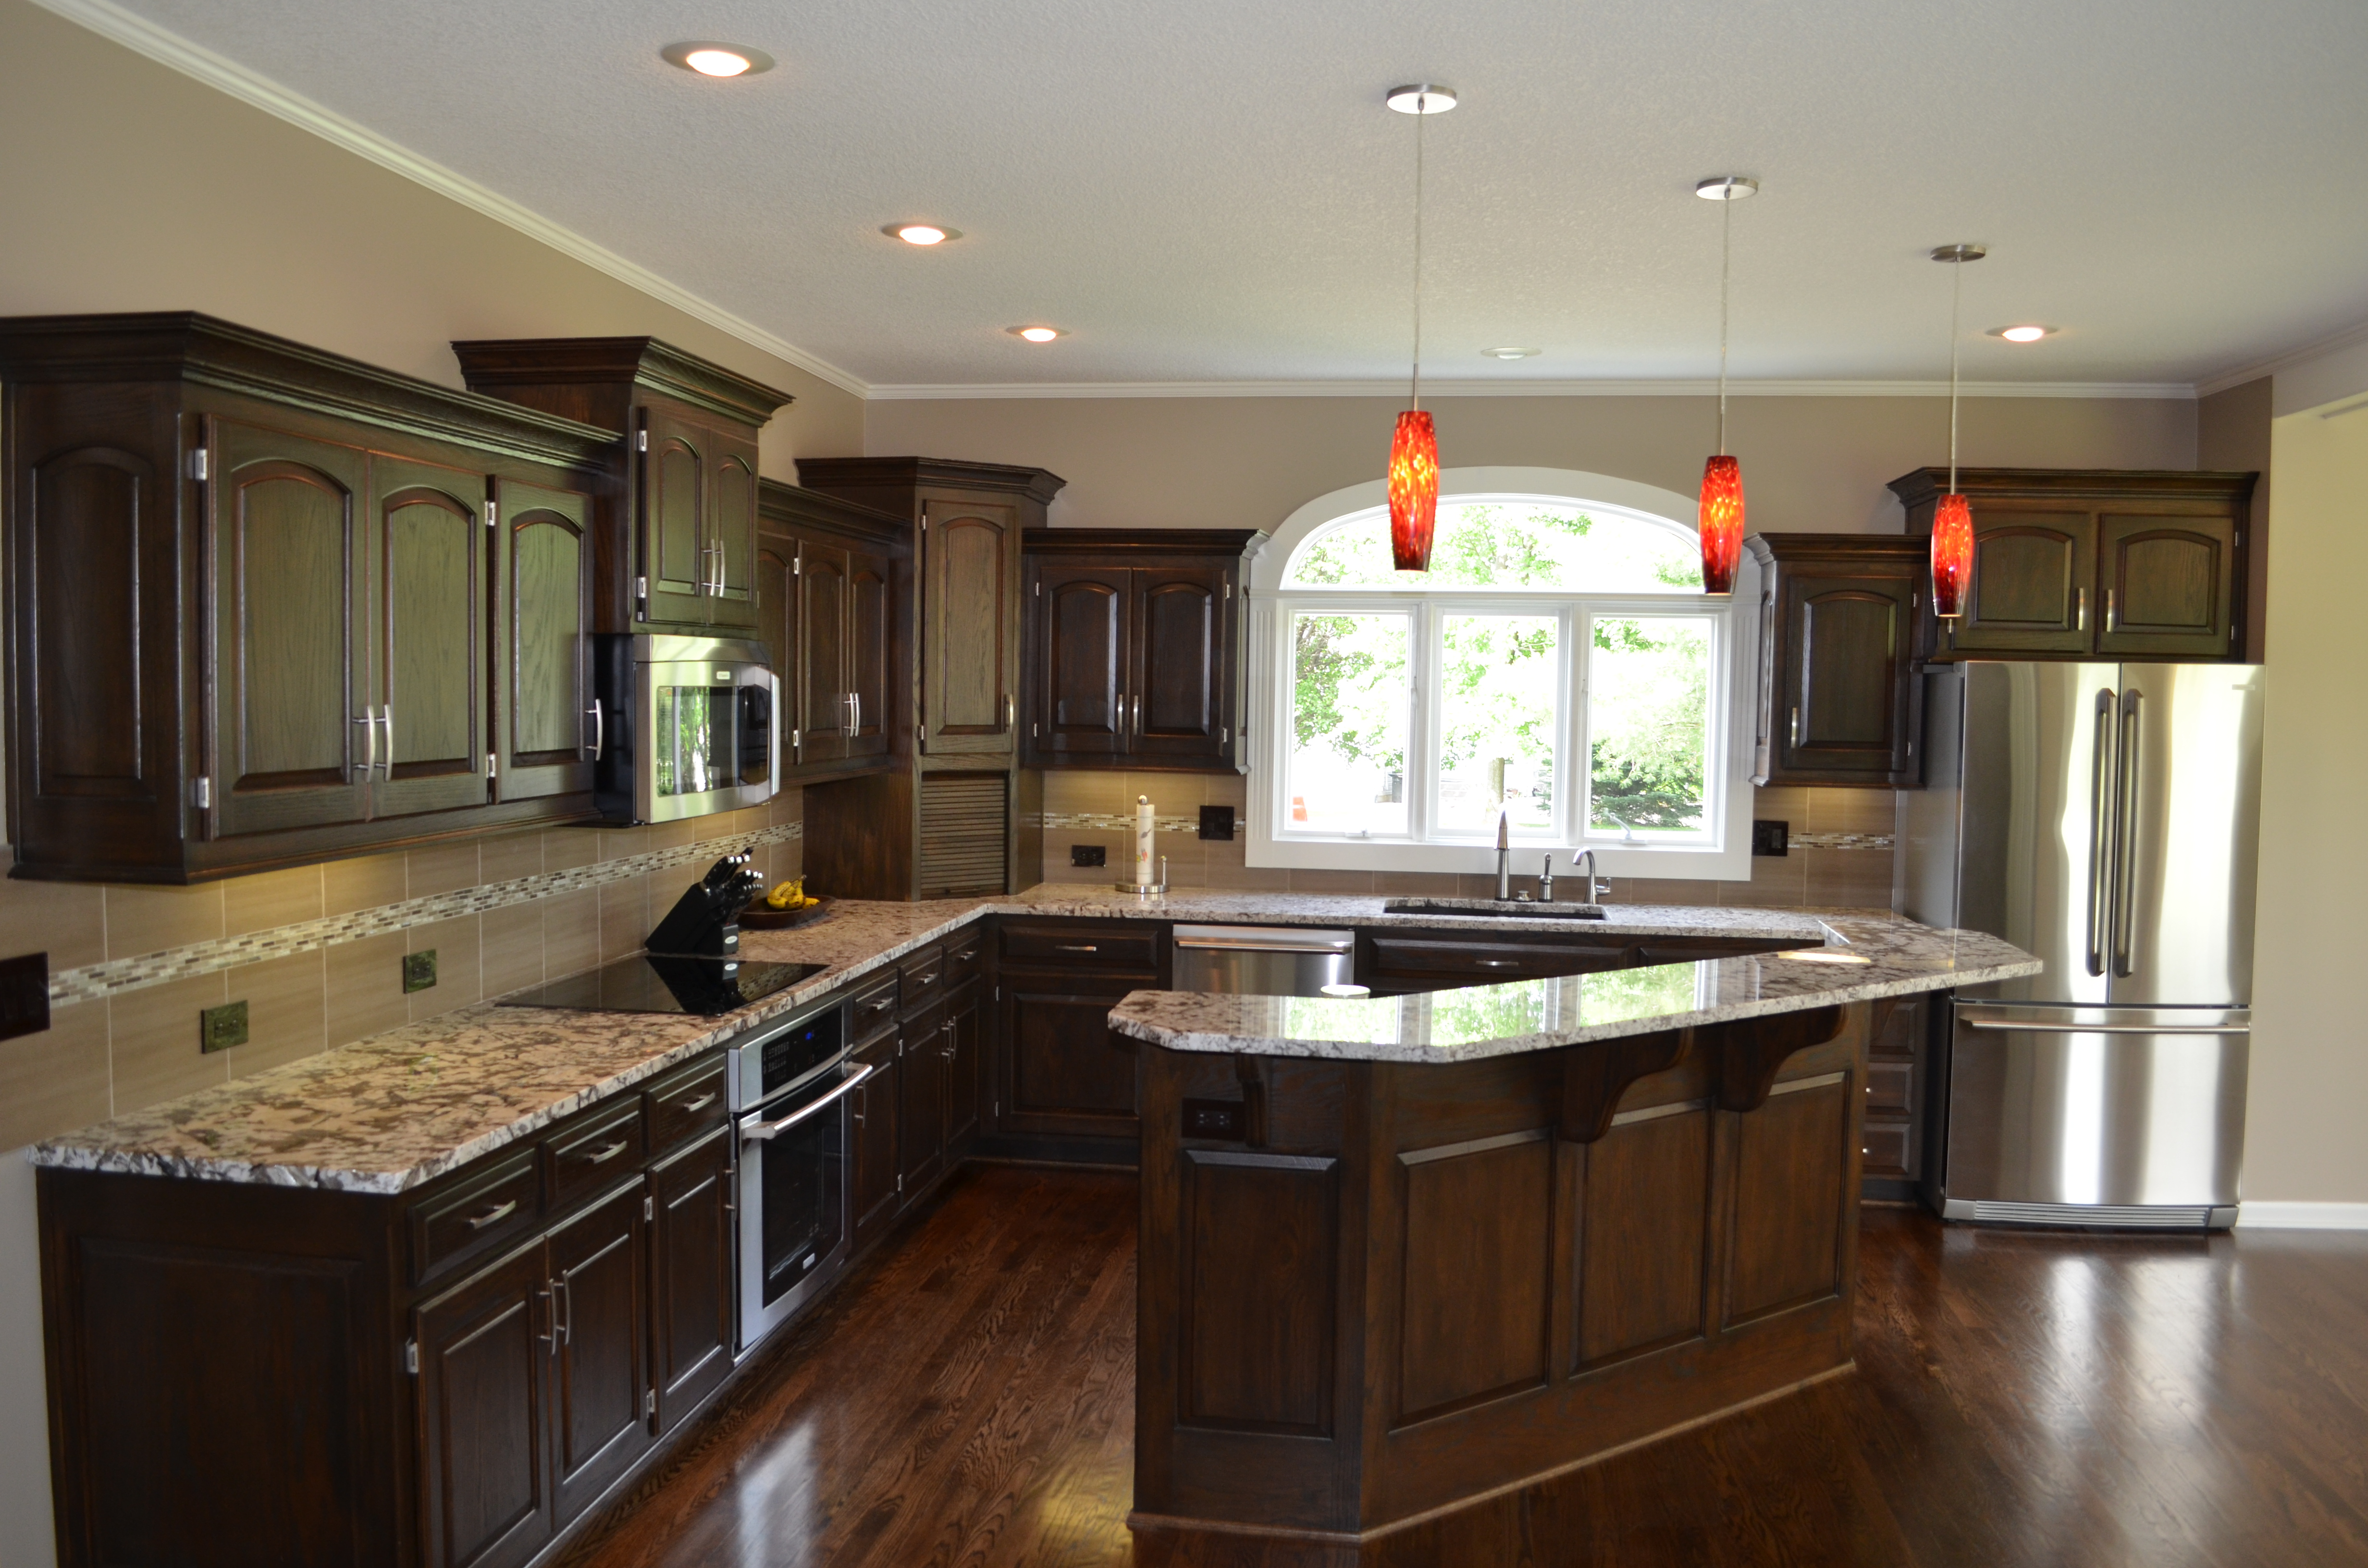 Kitchen remodeling kitchen design kansas cityremodeling for Kitchen cupboard renovation ideas